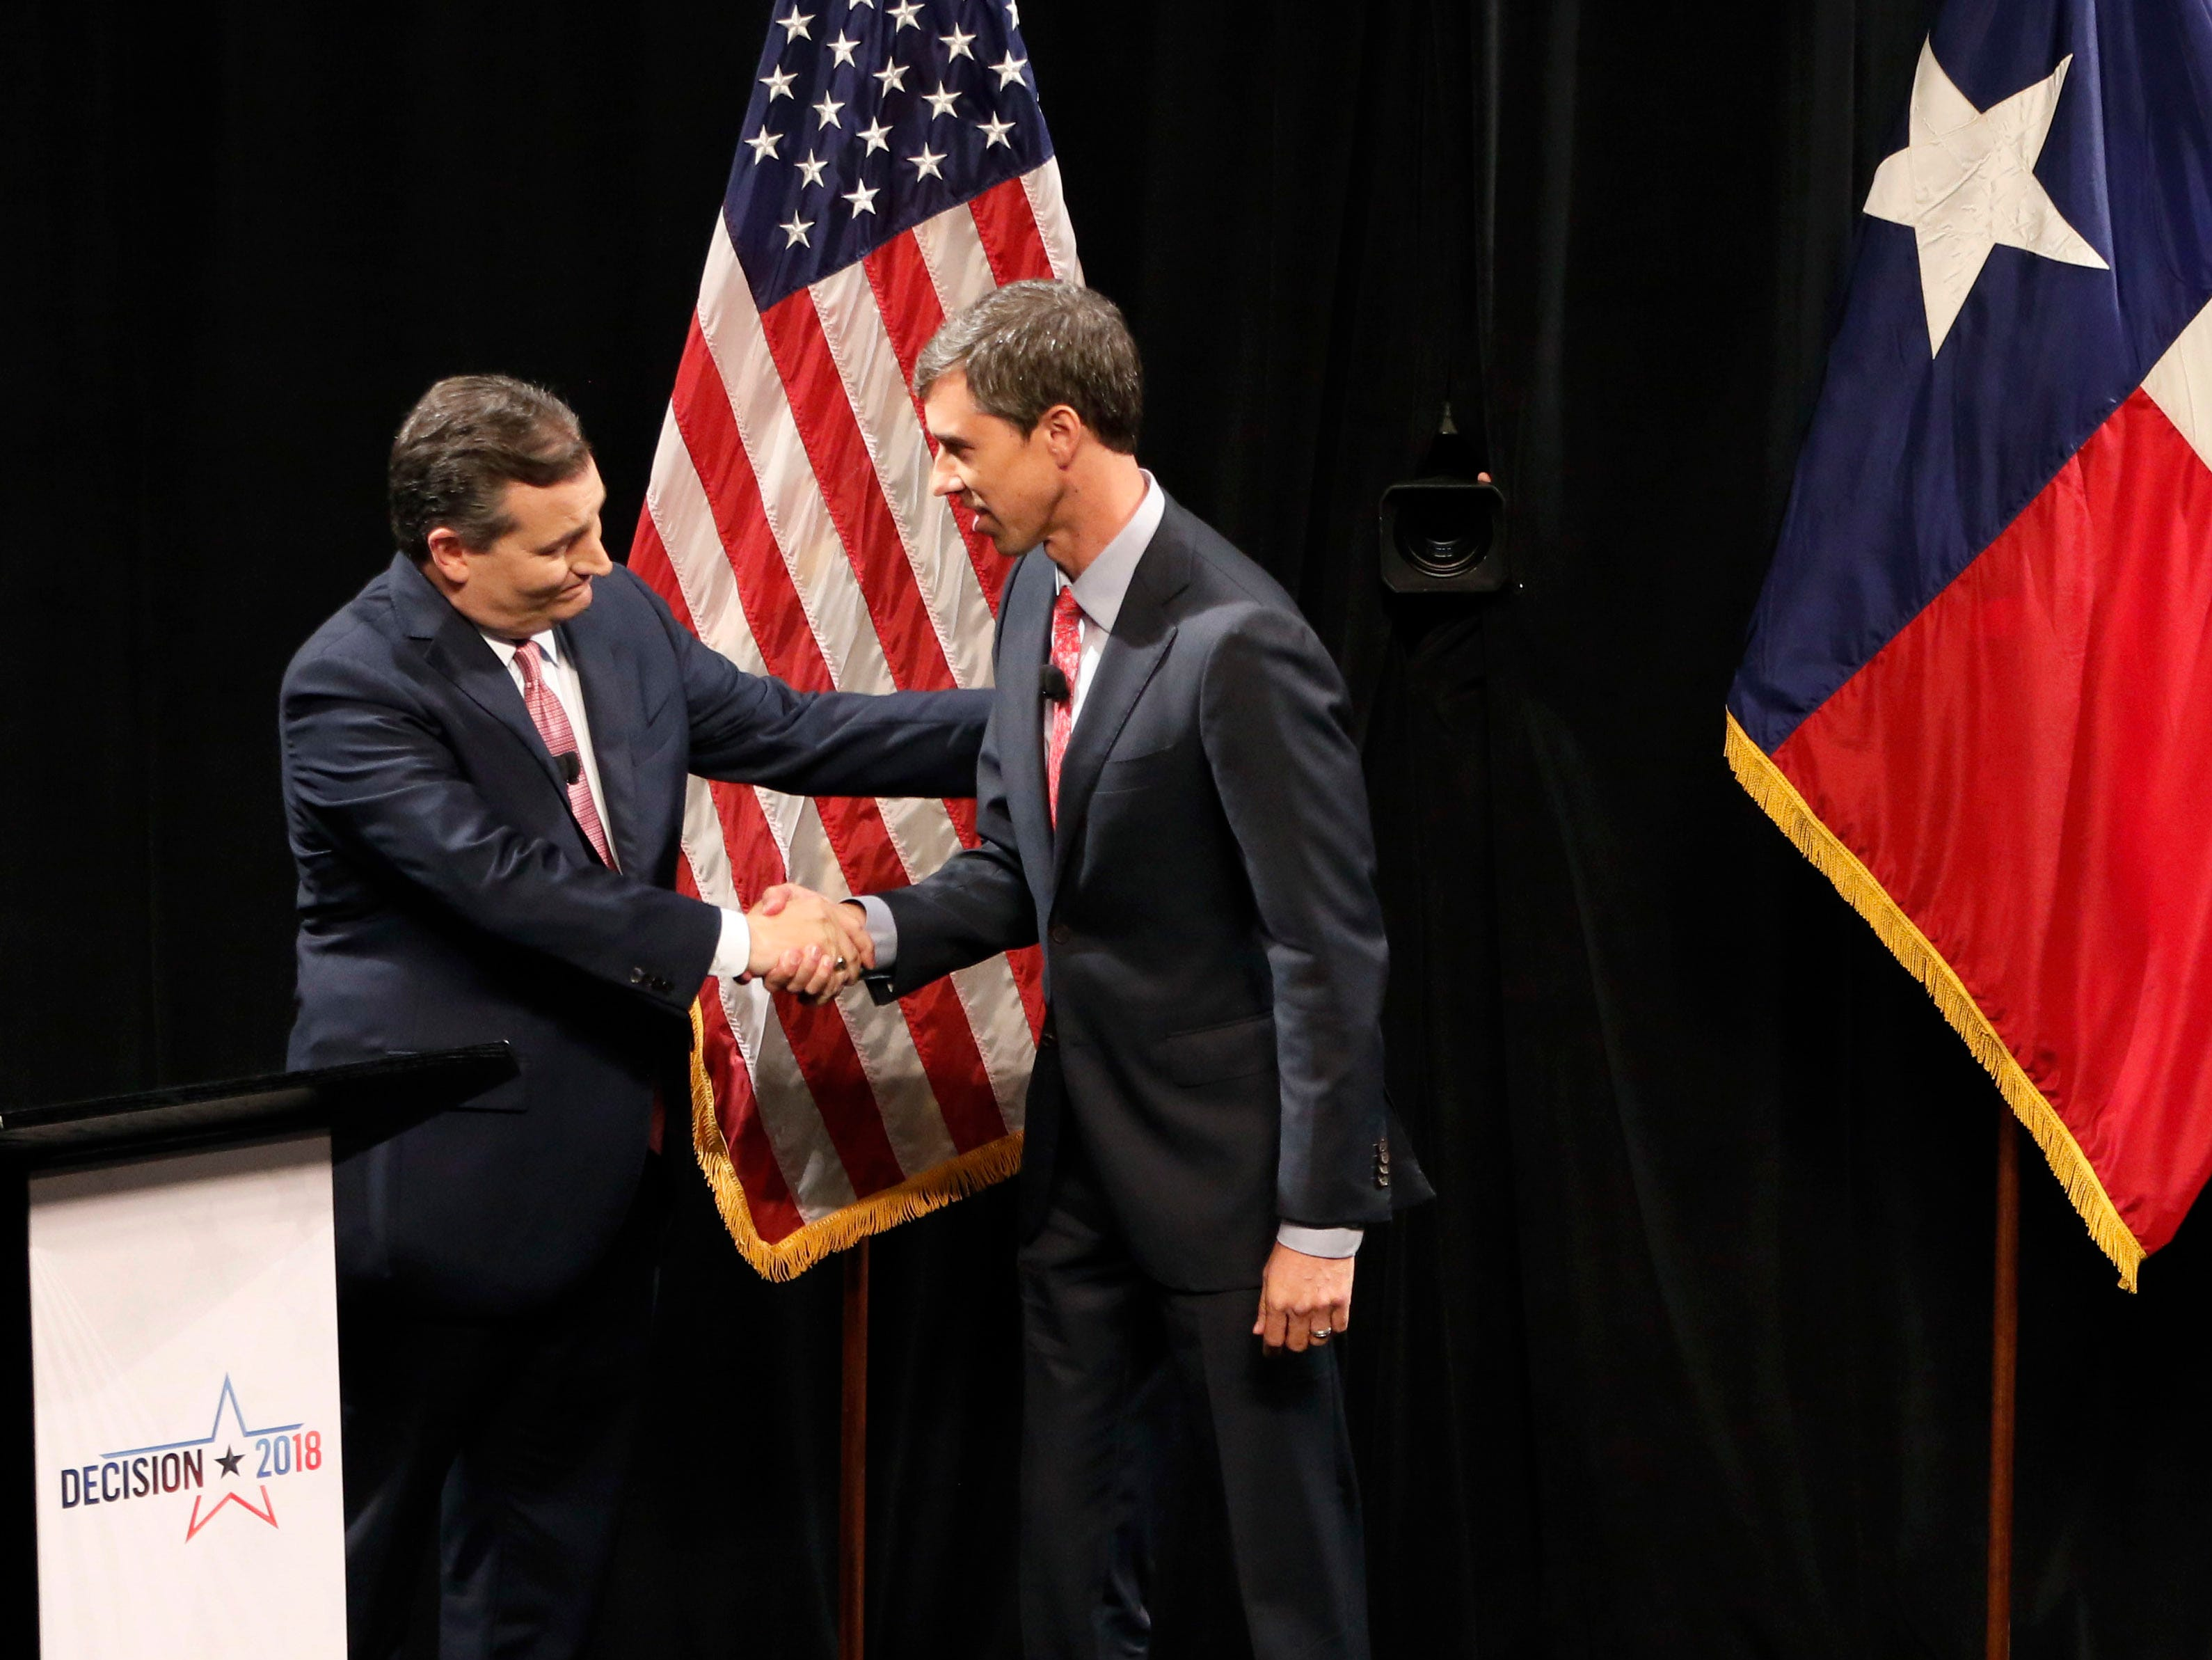 Republican U.S. Sen. Ted Cruz, left, and Democratic U.S. Rep. Beto O'Rourke, of El Paso, shake hands after their first debate for the Texas U.S. Senate on Sept. 21 in Dallas.